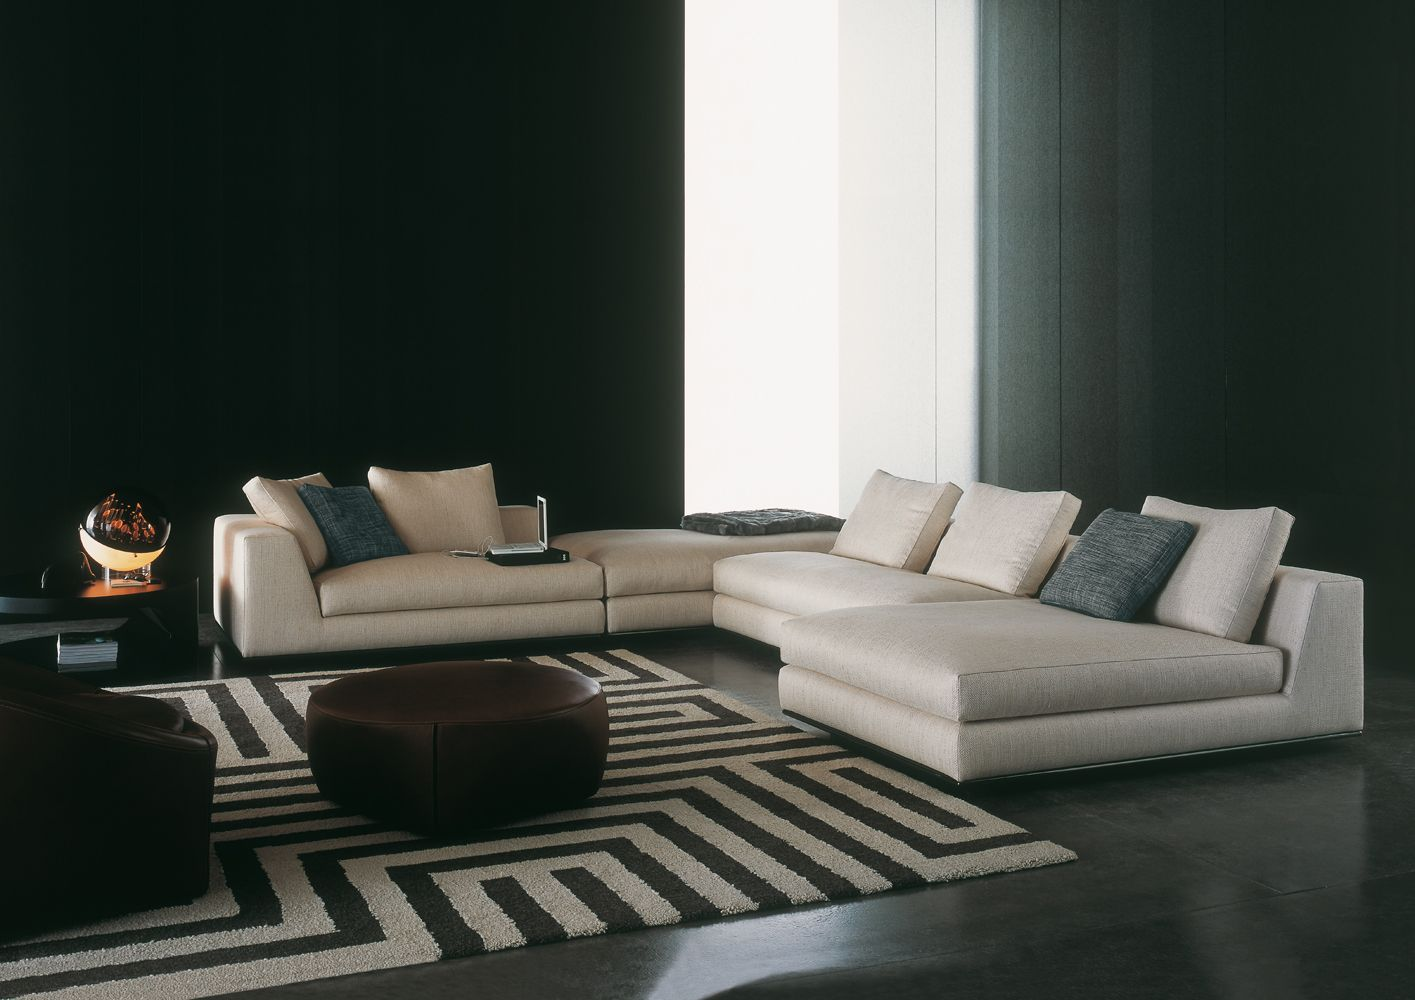 Minotti Mobili ~ Hamilton is a seating system with a simple design composed of